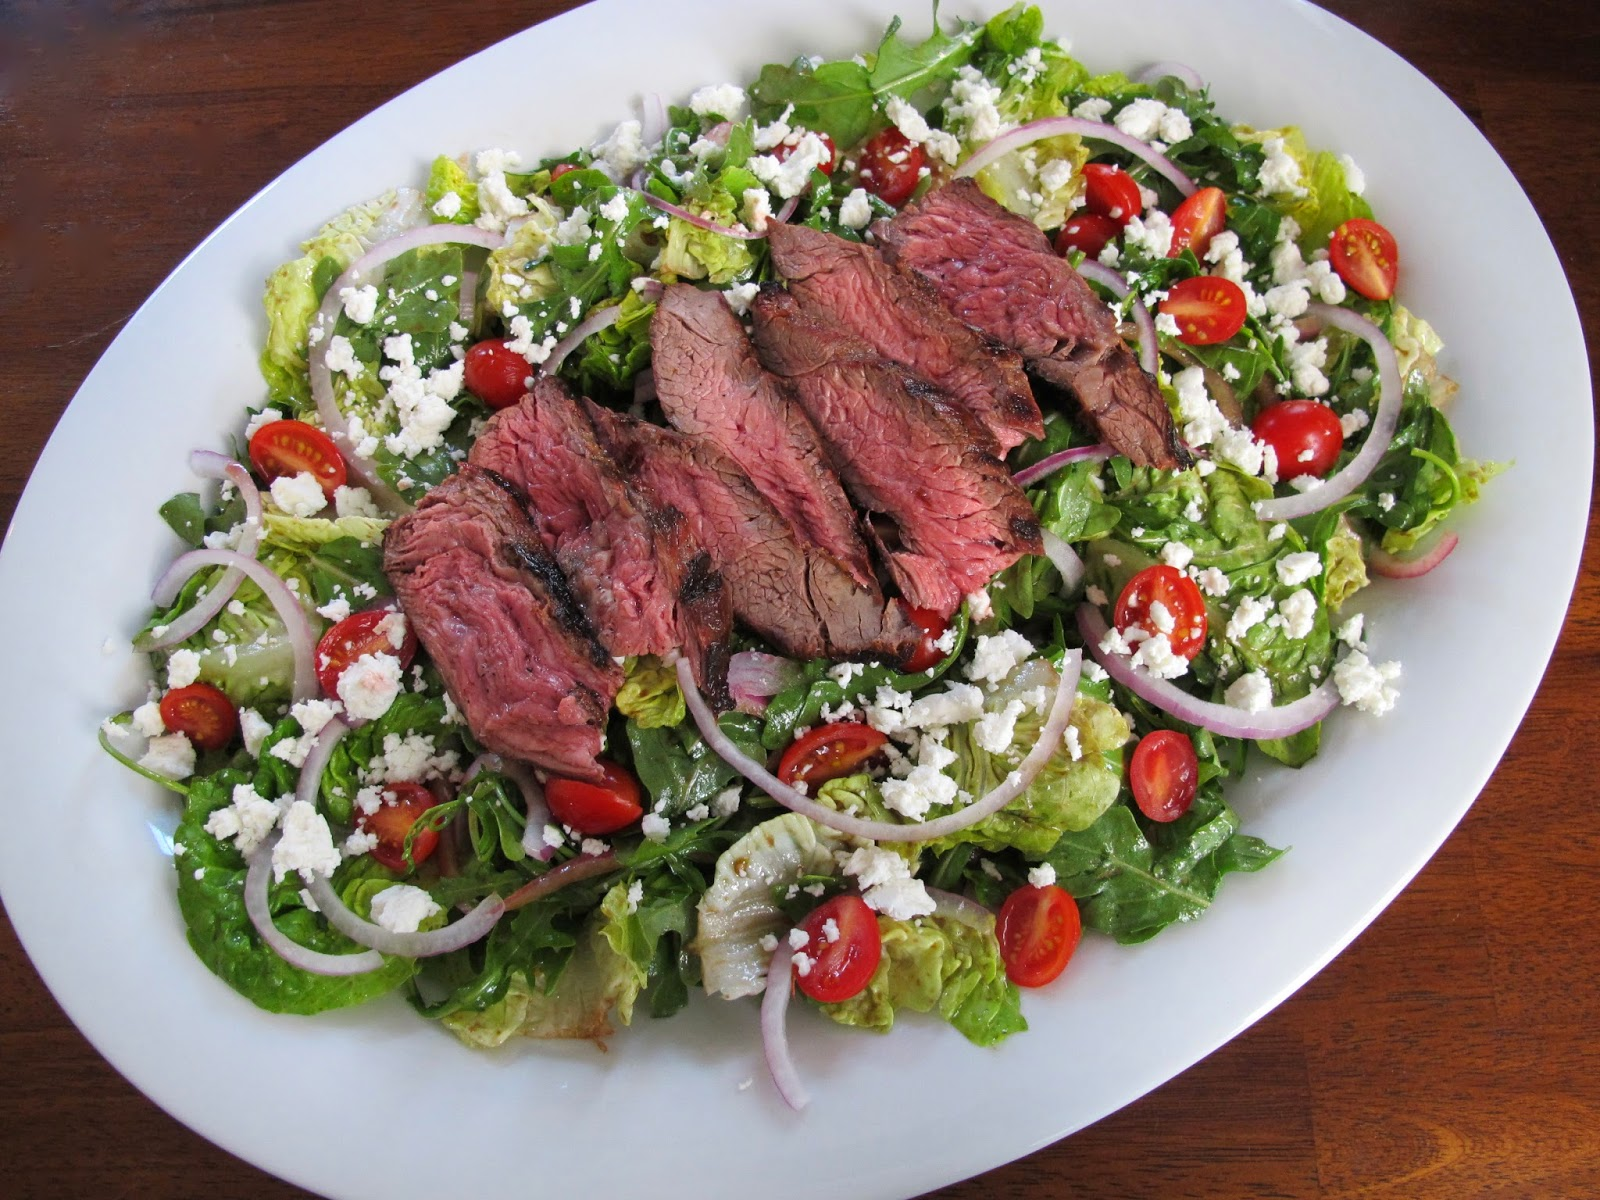 Grilled Skirt Steak Salad with Arugula, Little Gems, Grape Tomatoes, Red Onion, Goat Cheese